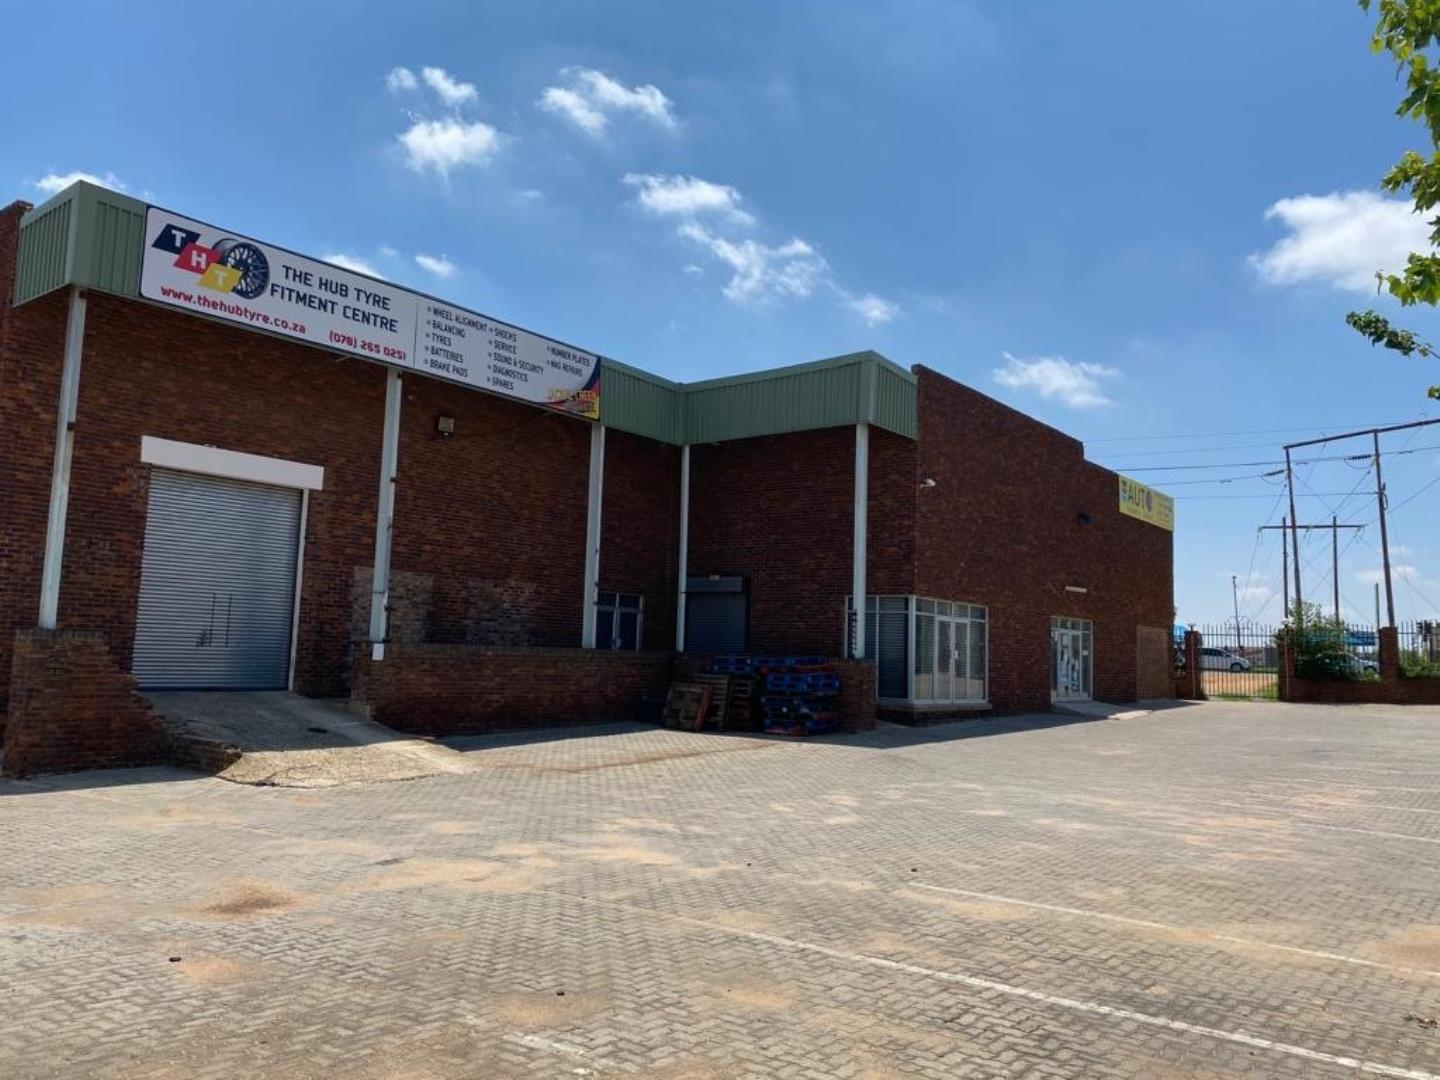 Commercial Property for Sale in Cosmo City, Roodepoort - Gauteng